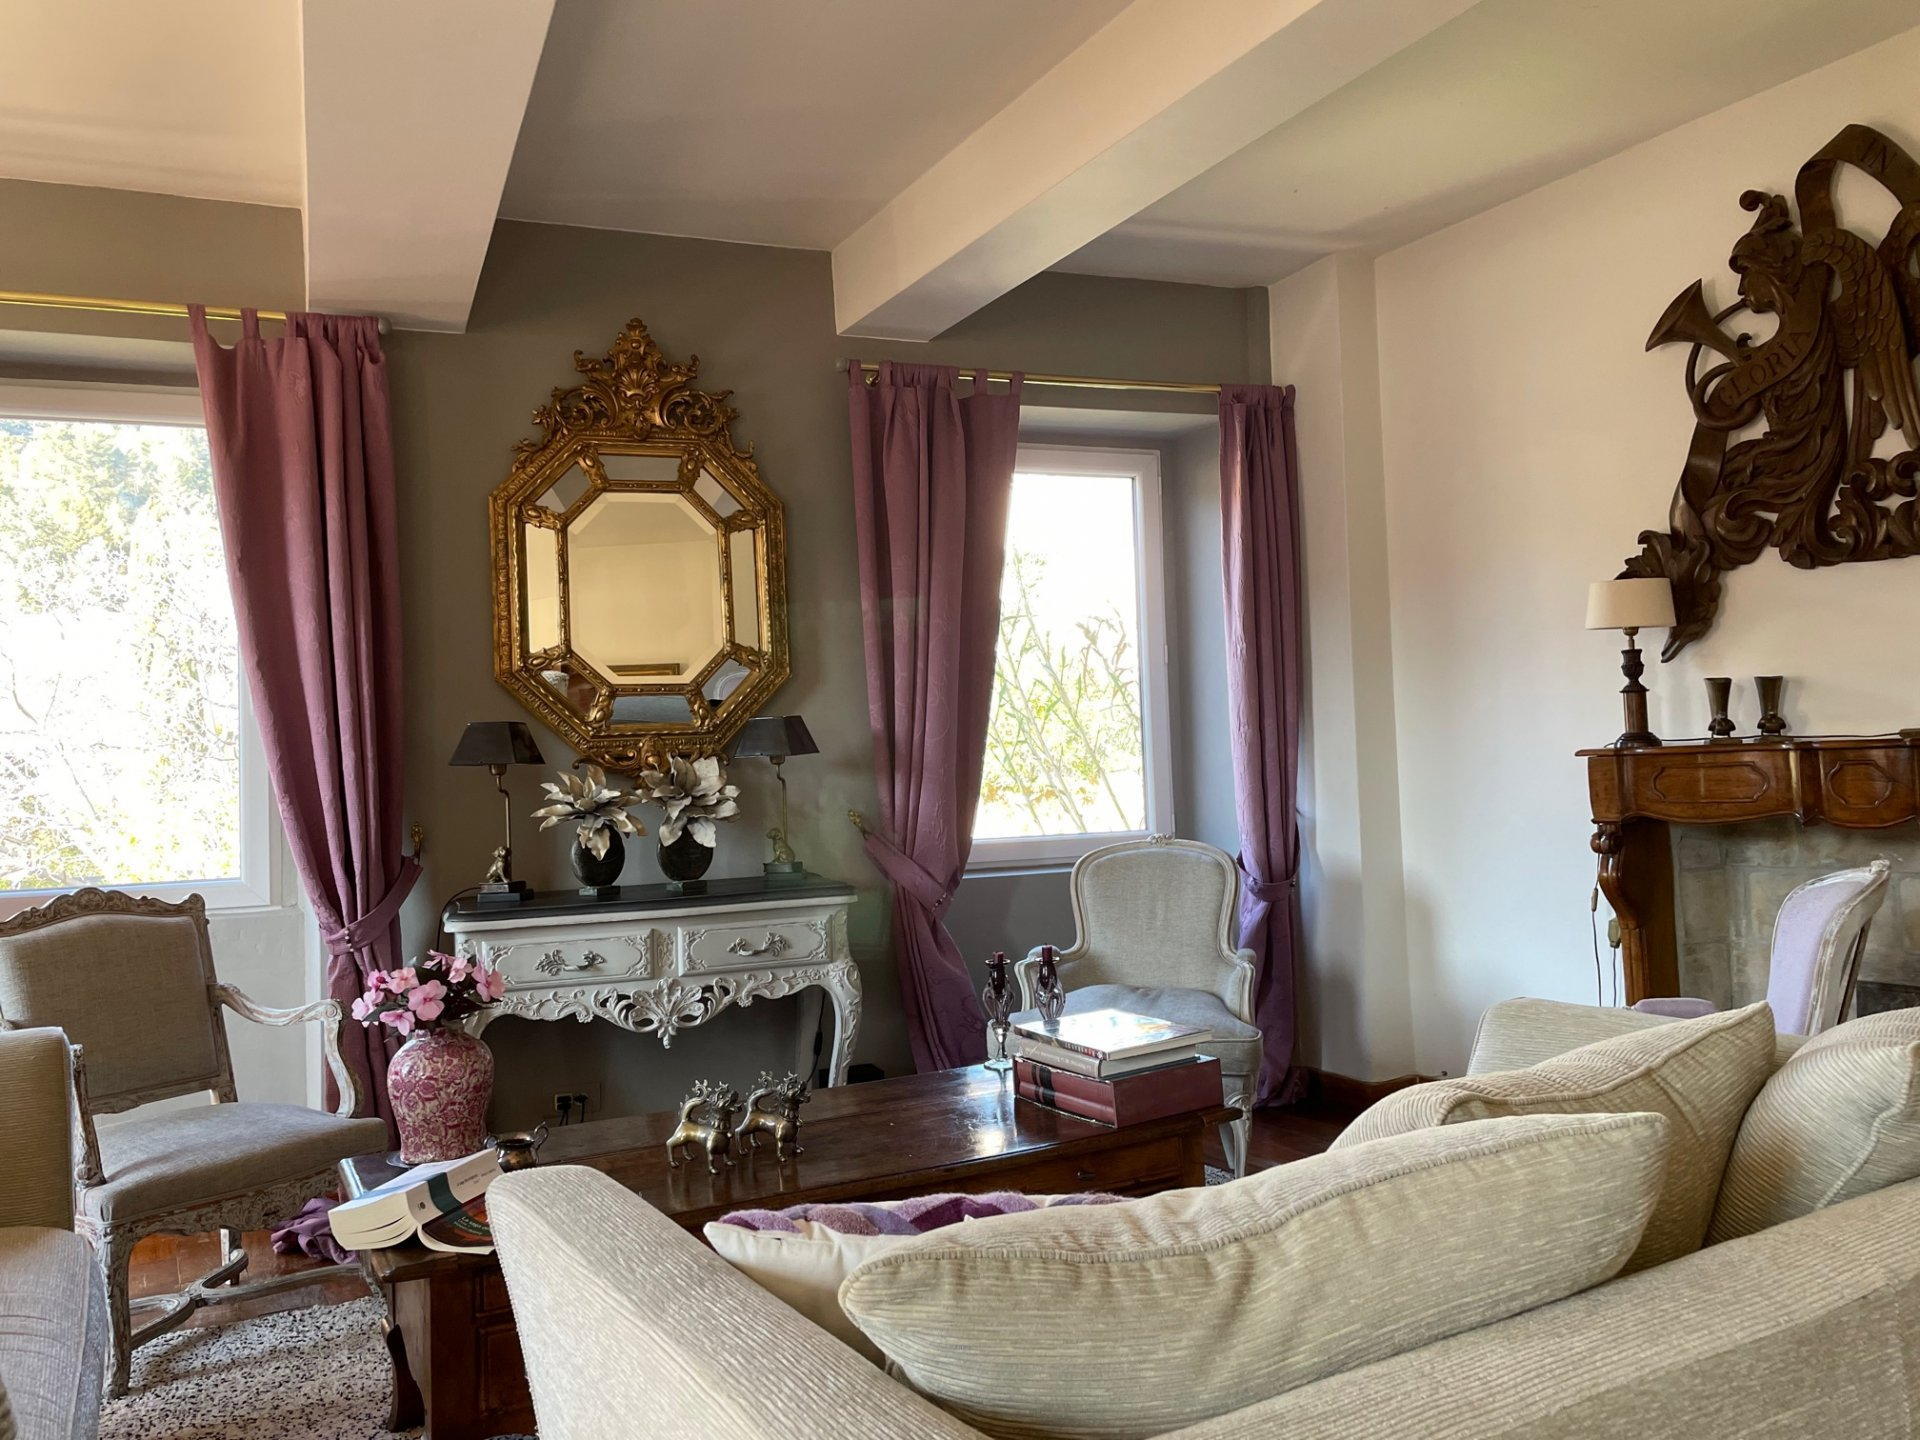 COTIGNAC superb town house on 4 levels